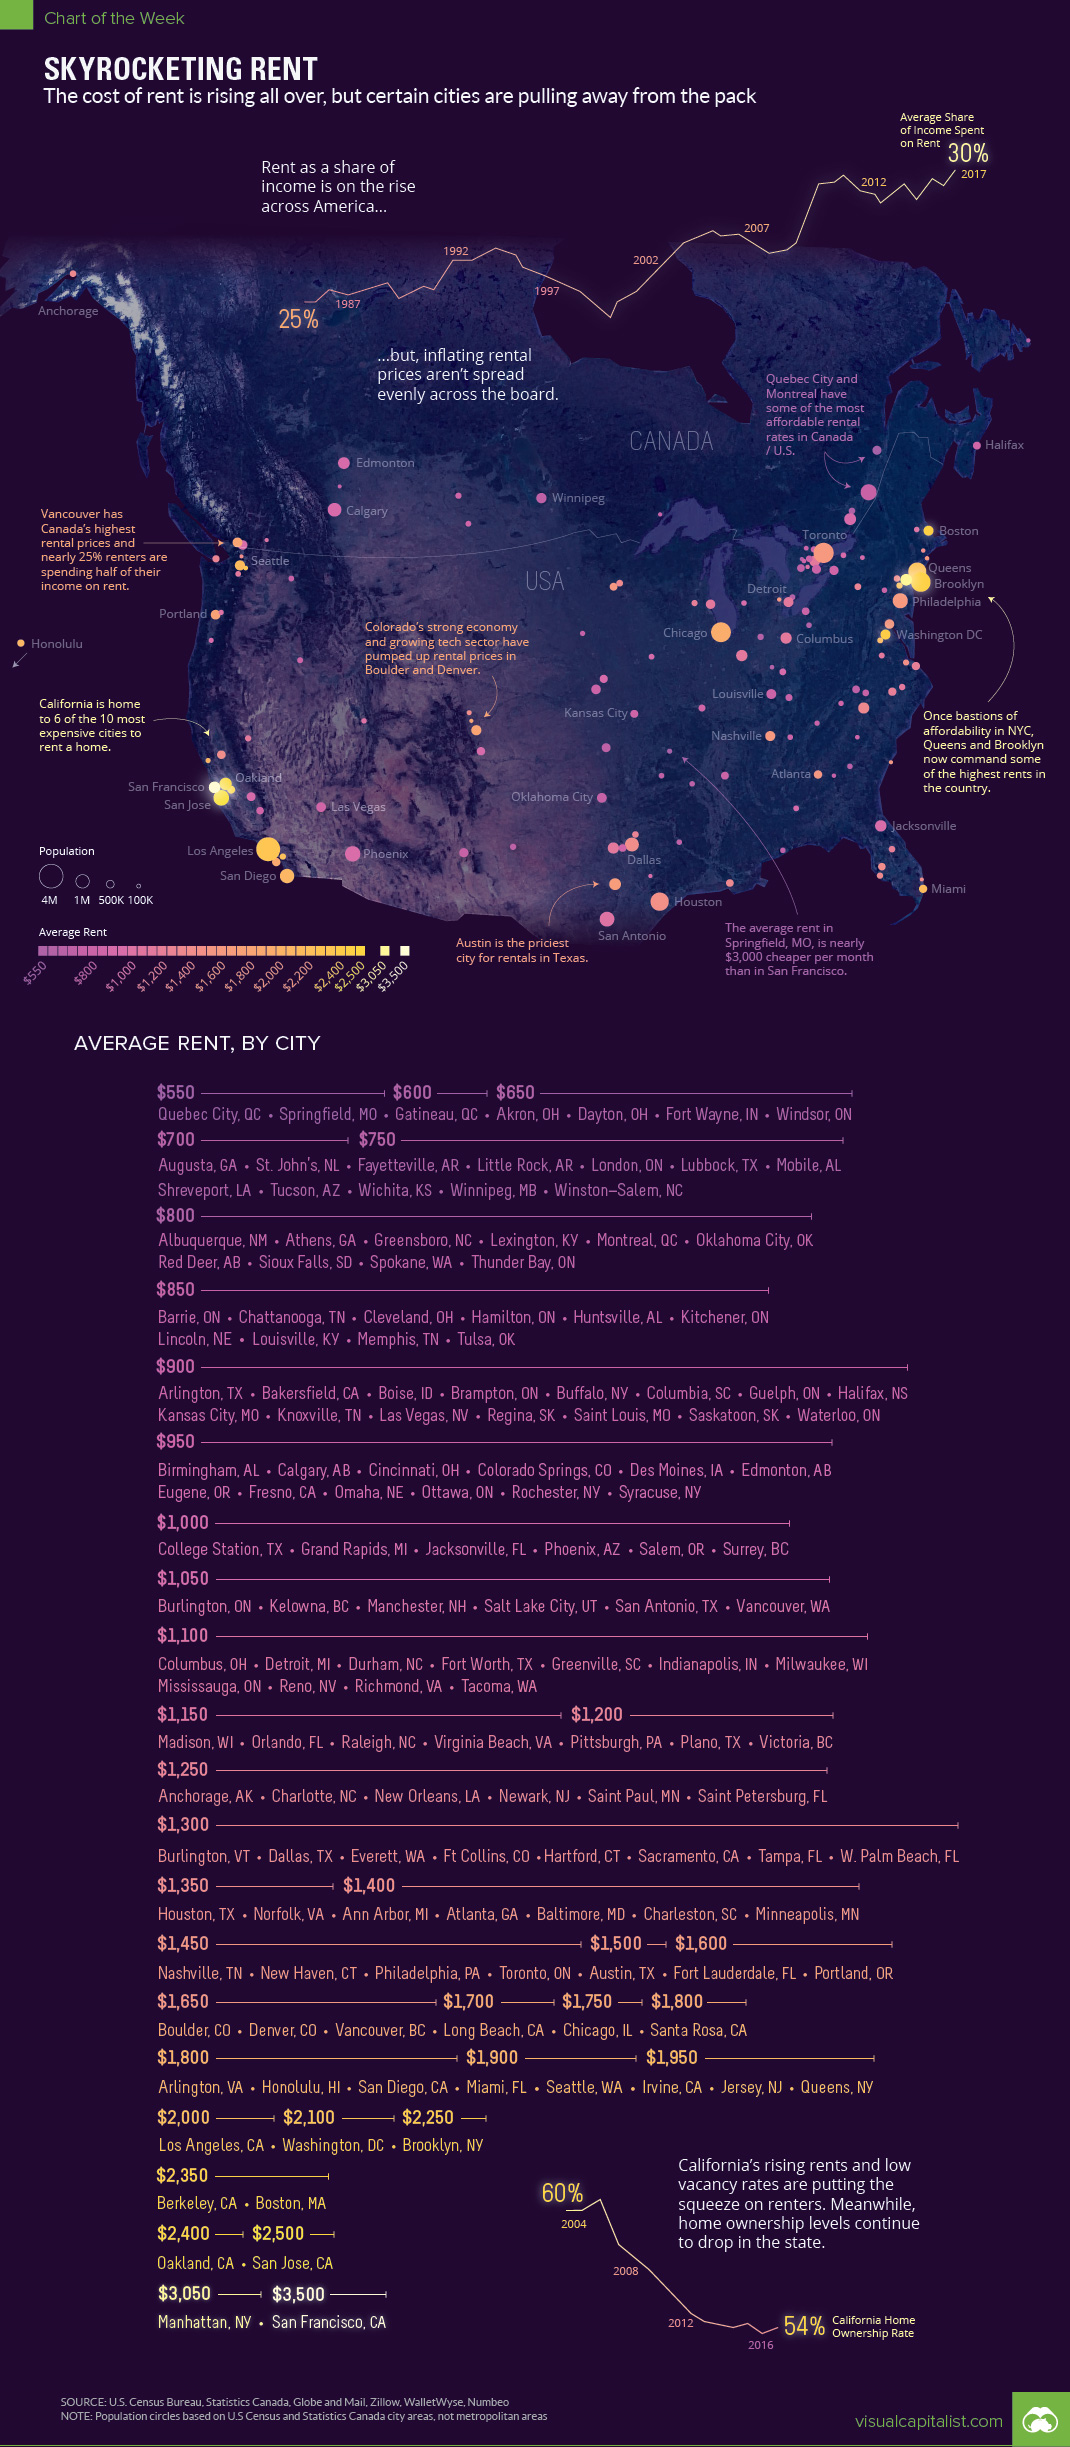 City-wise Average Rent Rates Across North American Cities - Infographic